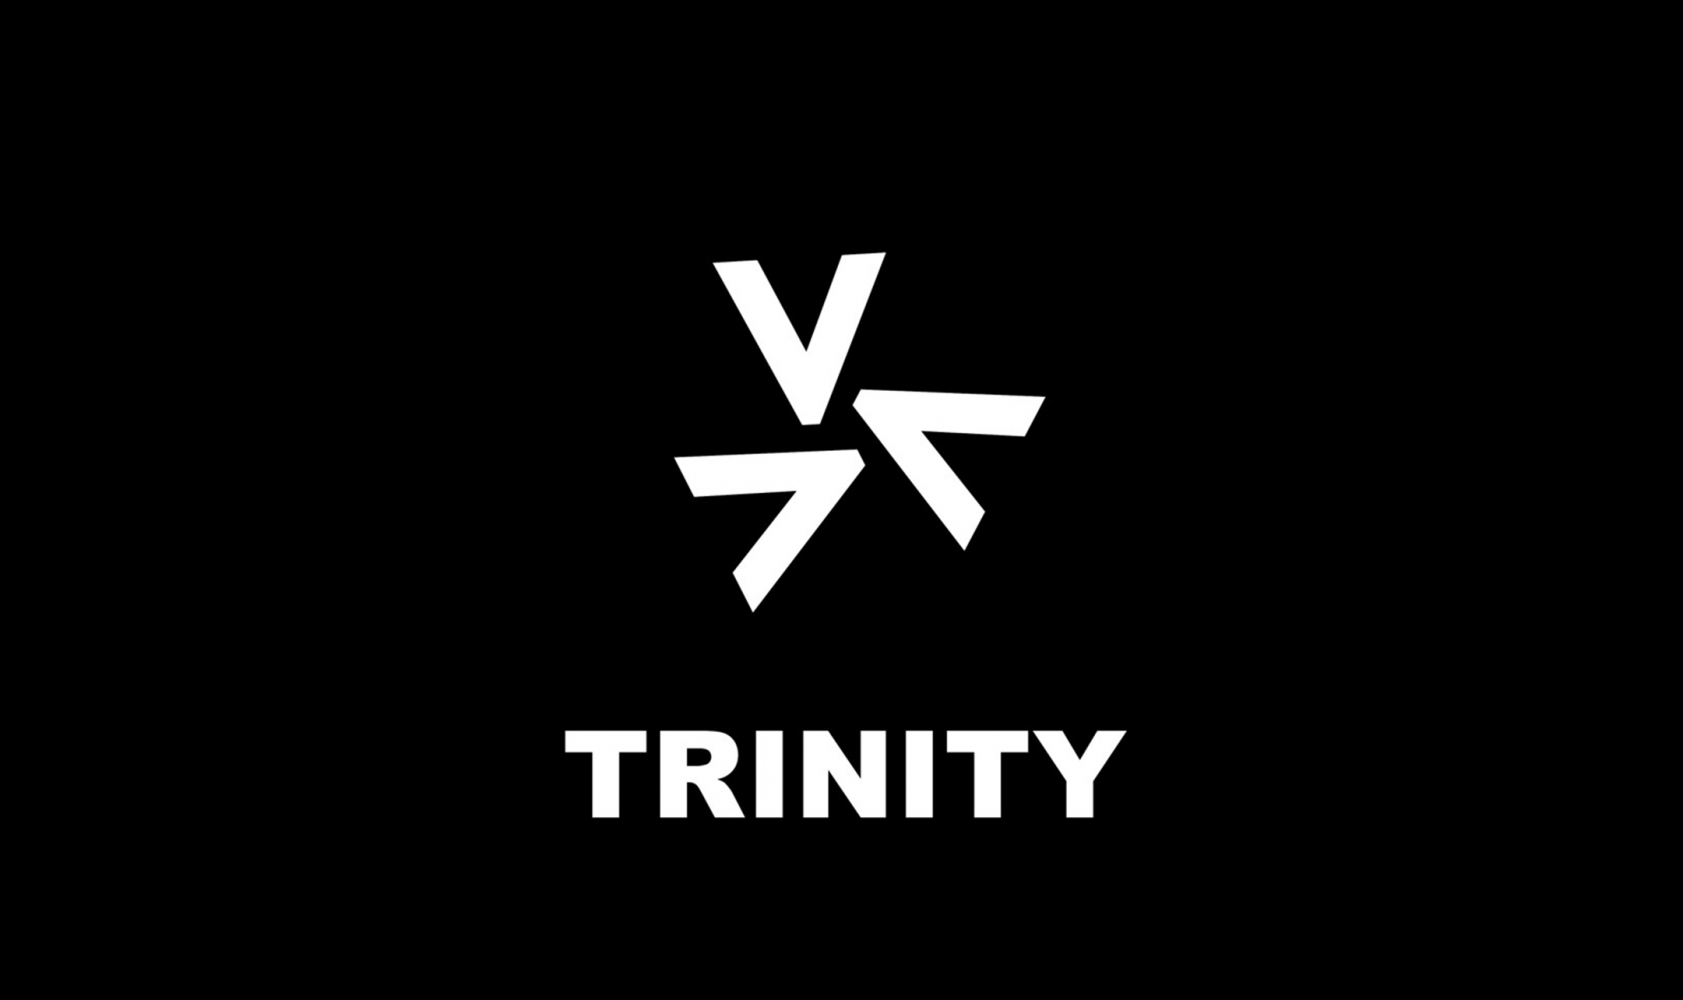 Who are Trinity IM?